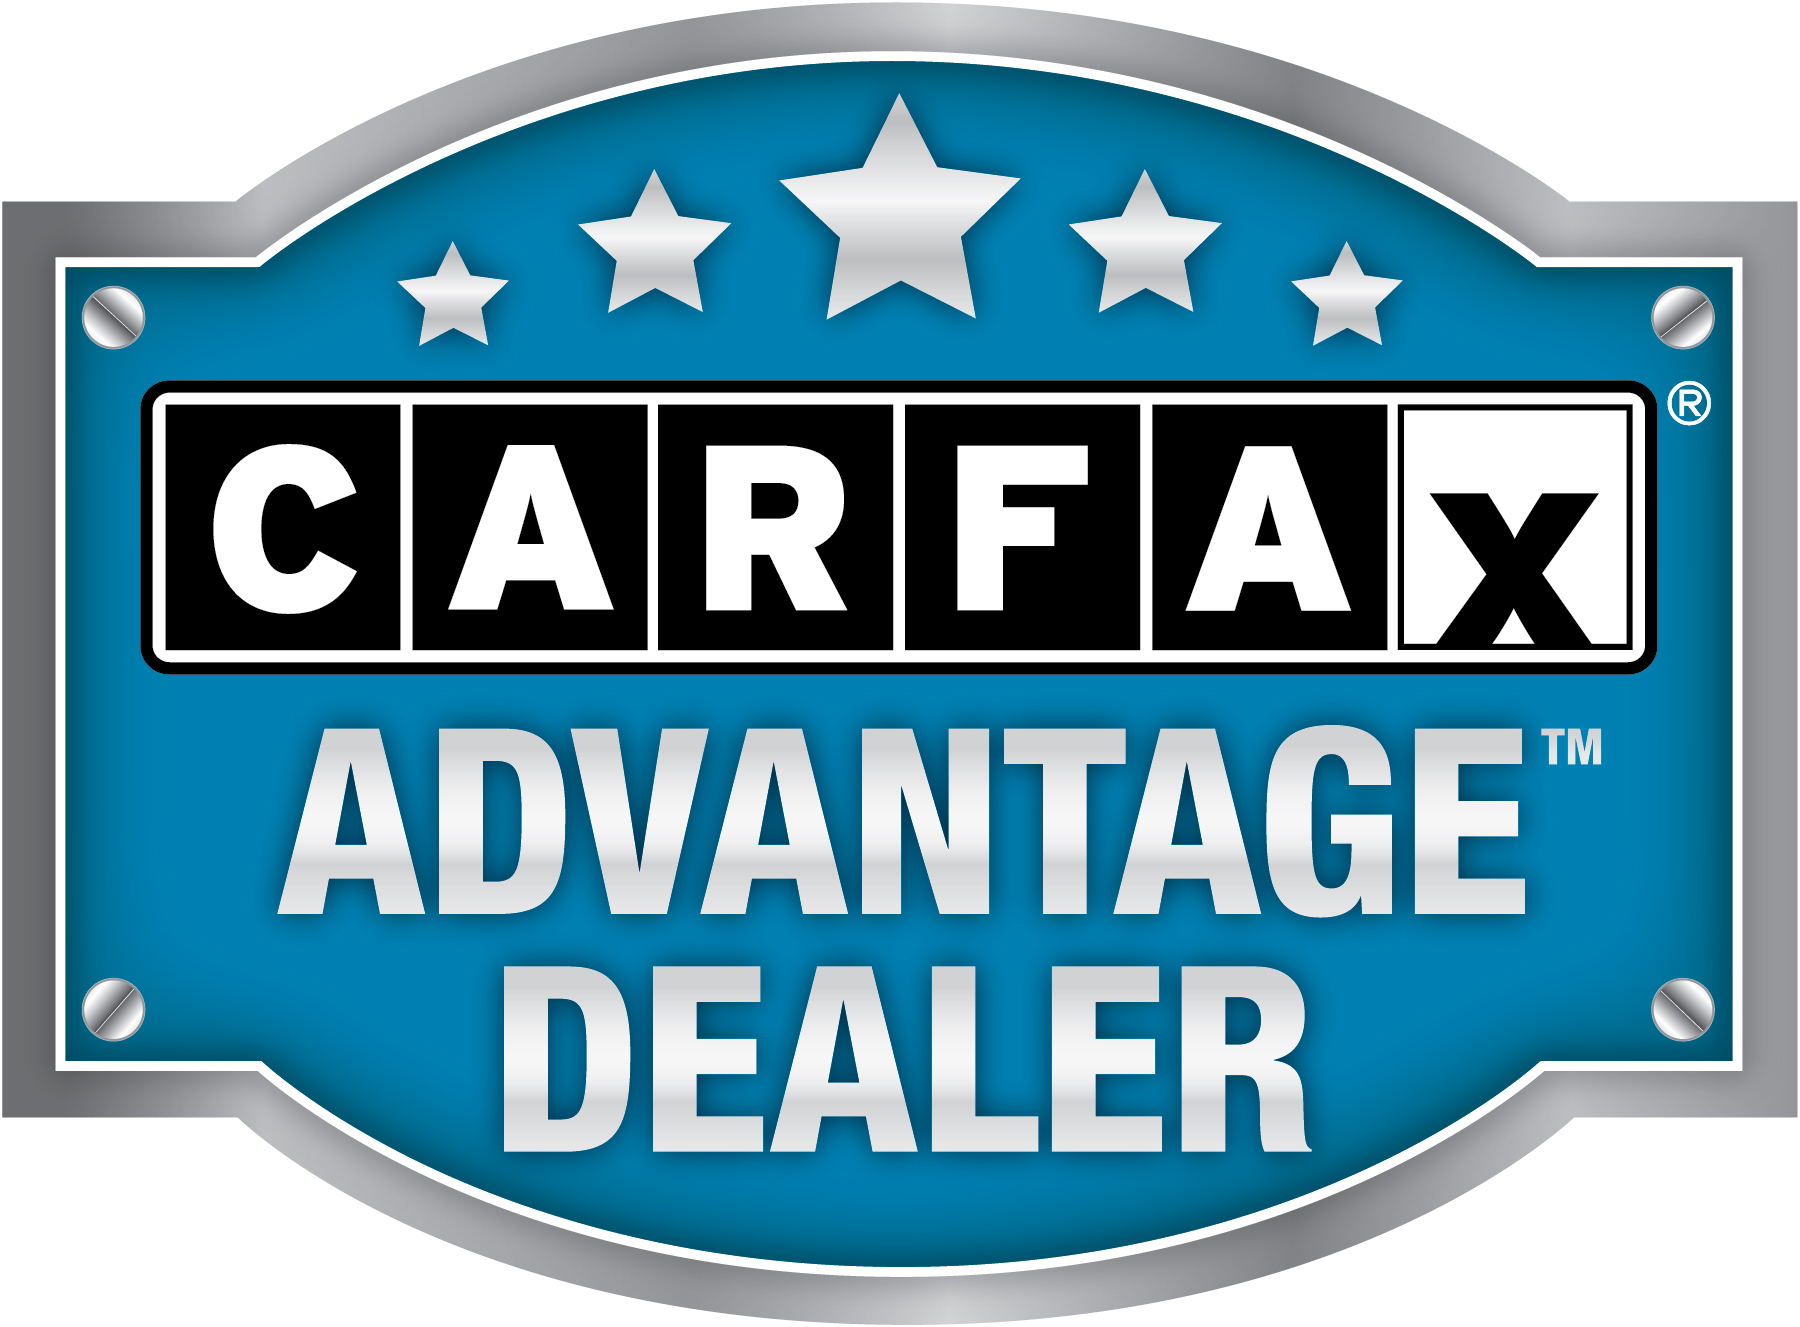 Carfax-Advantage-Dealer-logo-on-white